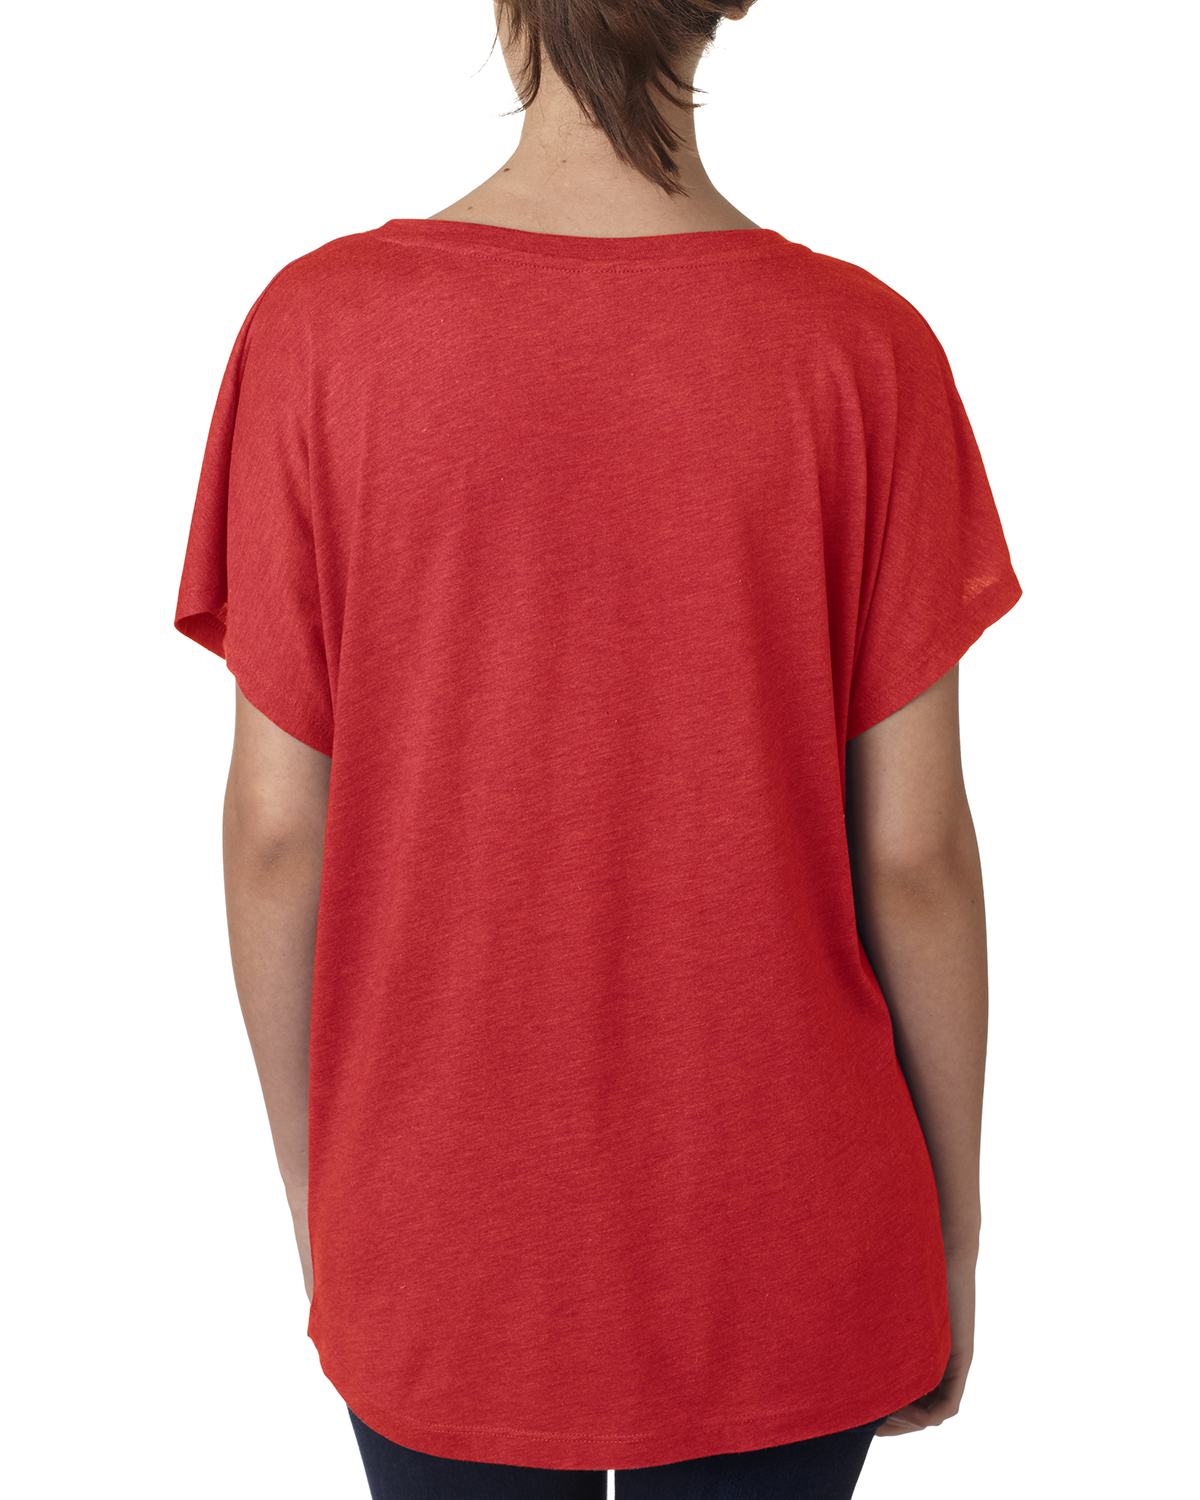 NEW-Next-Level-Junior-Fit-Triblend-Dolman-Sleeve-Relexed-Fit-T-Shirt-B-6760 thumbnail 39